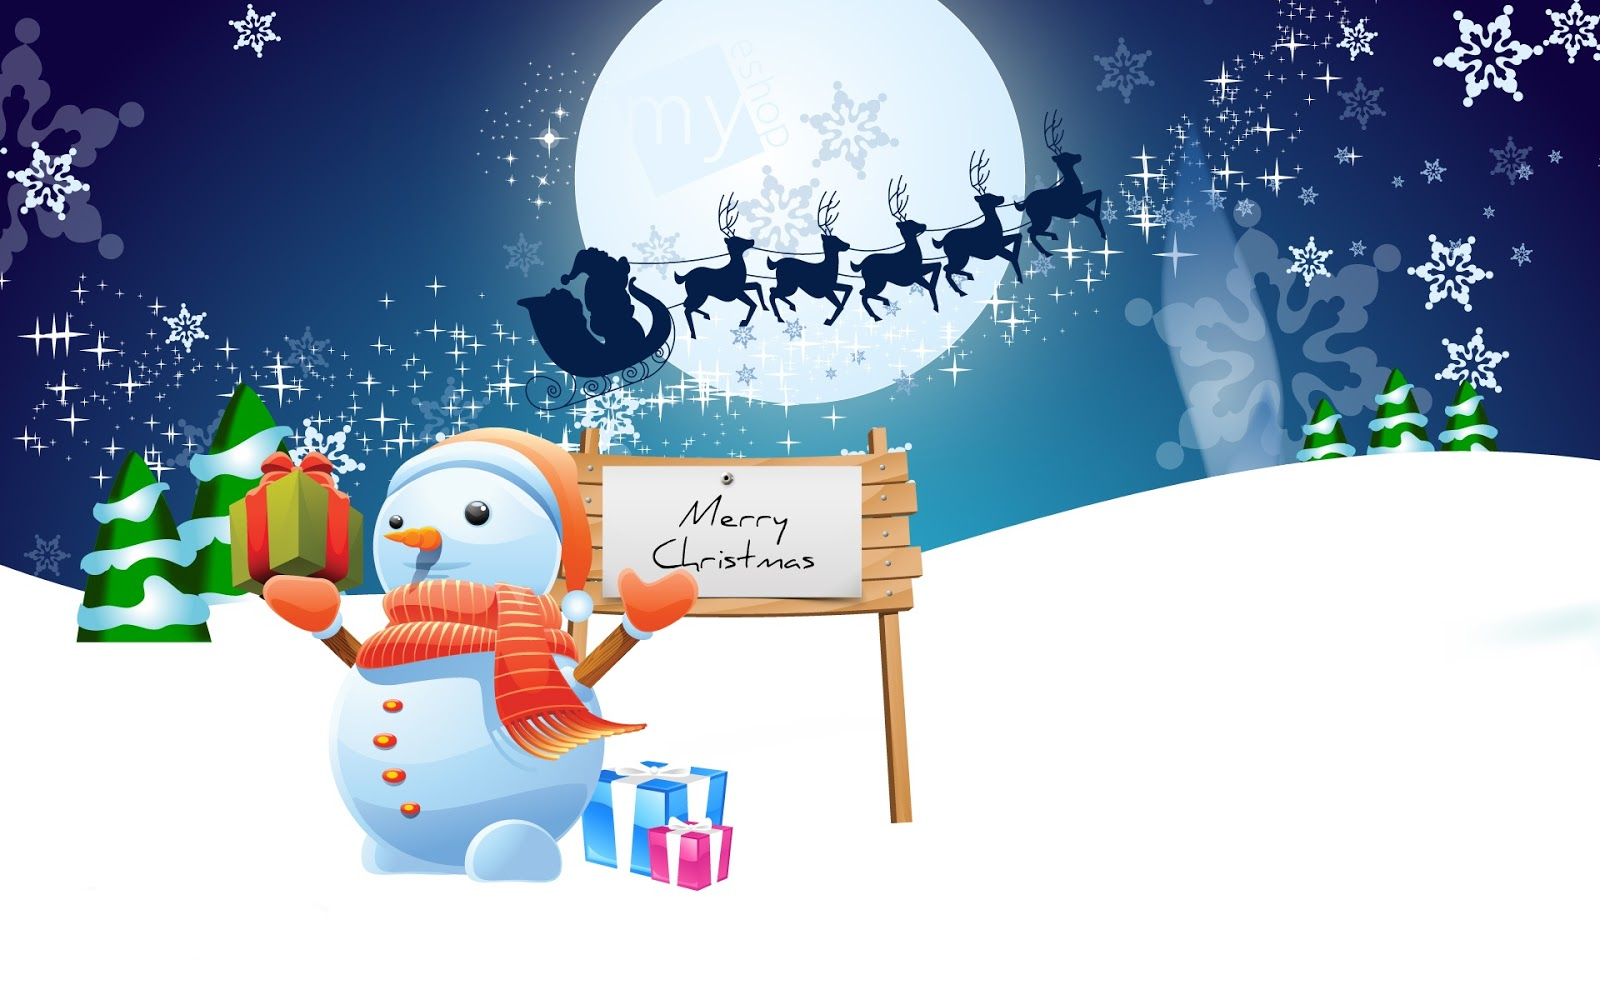 wallpaper 08 merry christmas wallpaper 09 merry christmas wallpaper 10